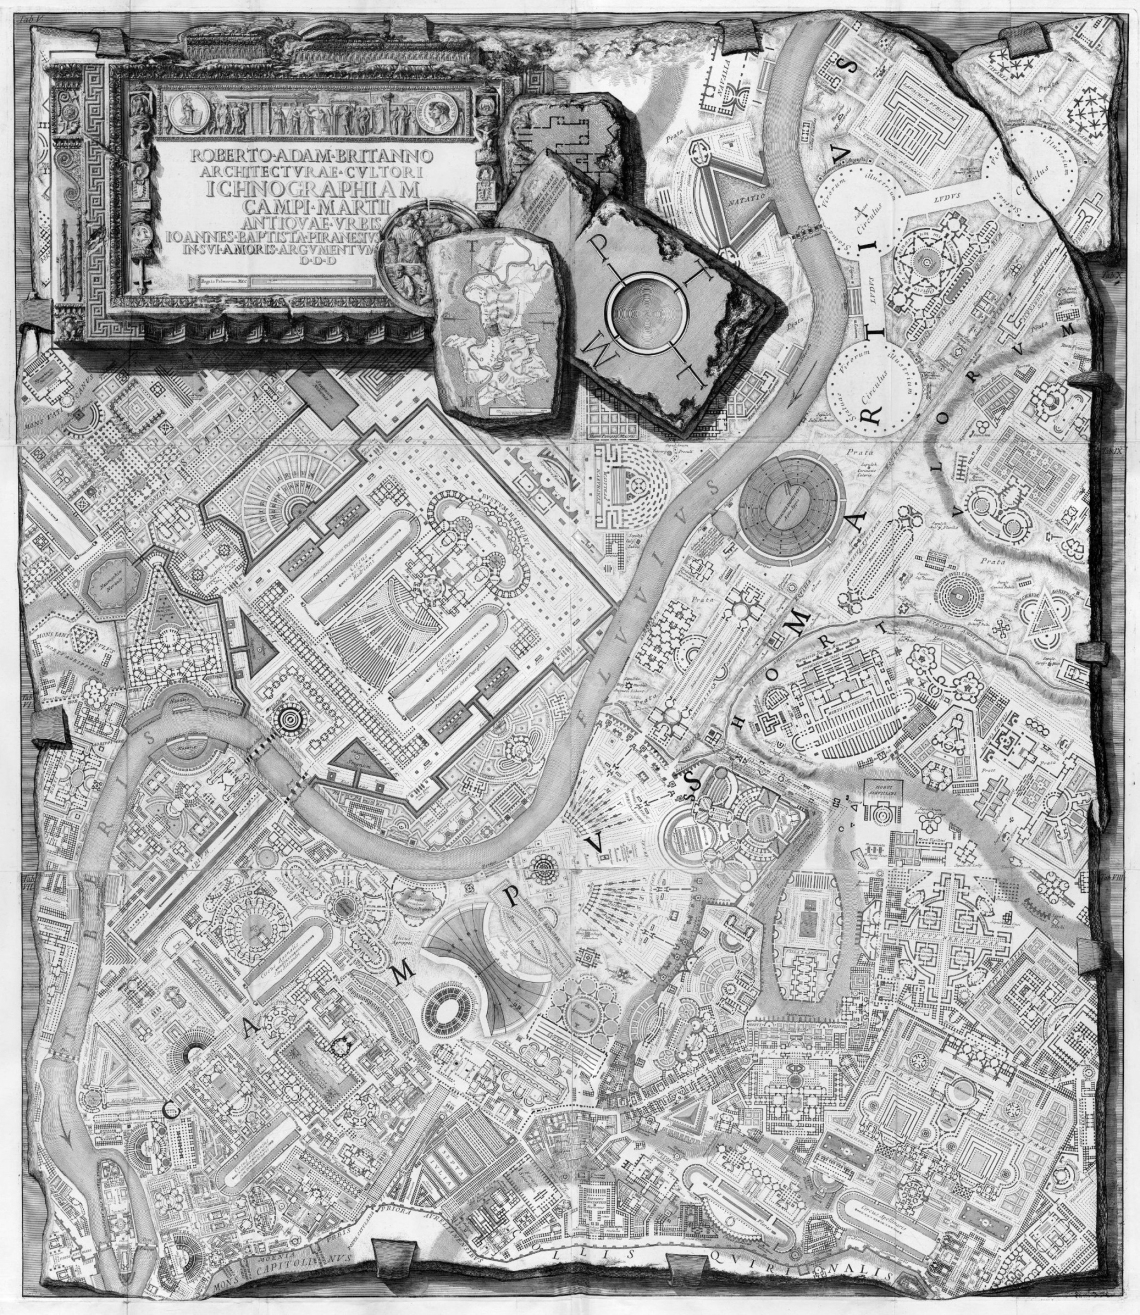 Houghton_63-368_-_Piranesi,_map_of_Rome.jpg